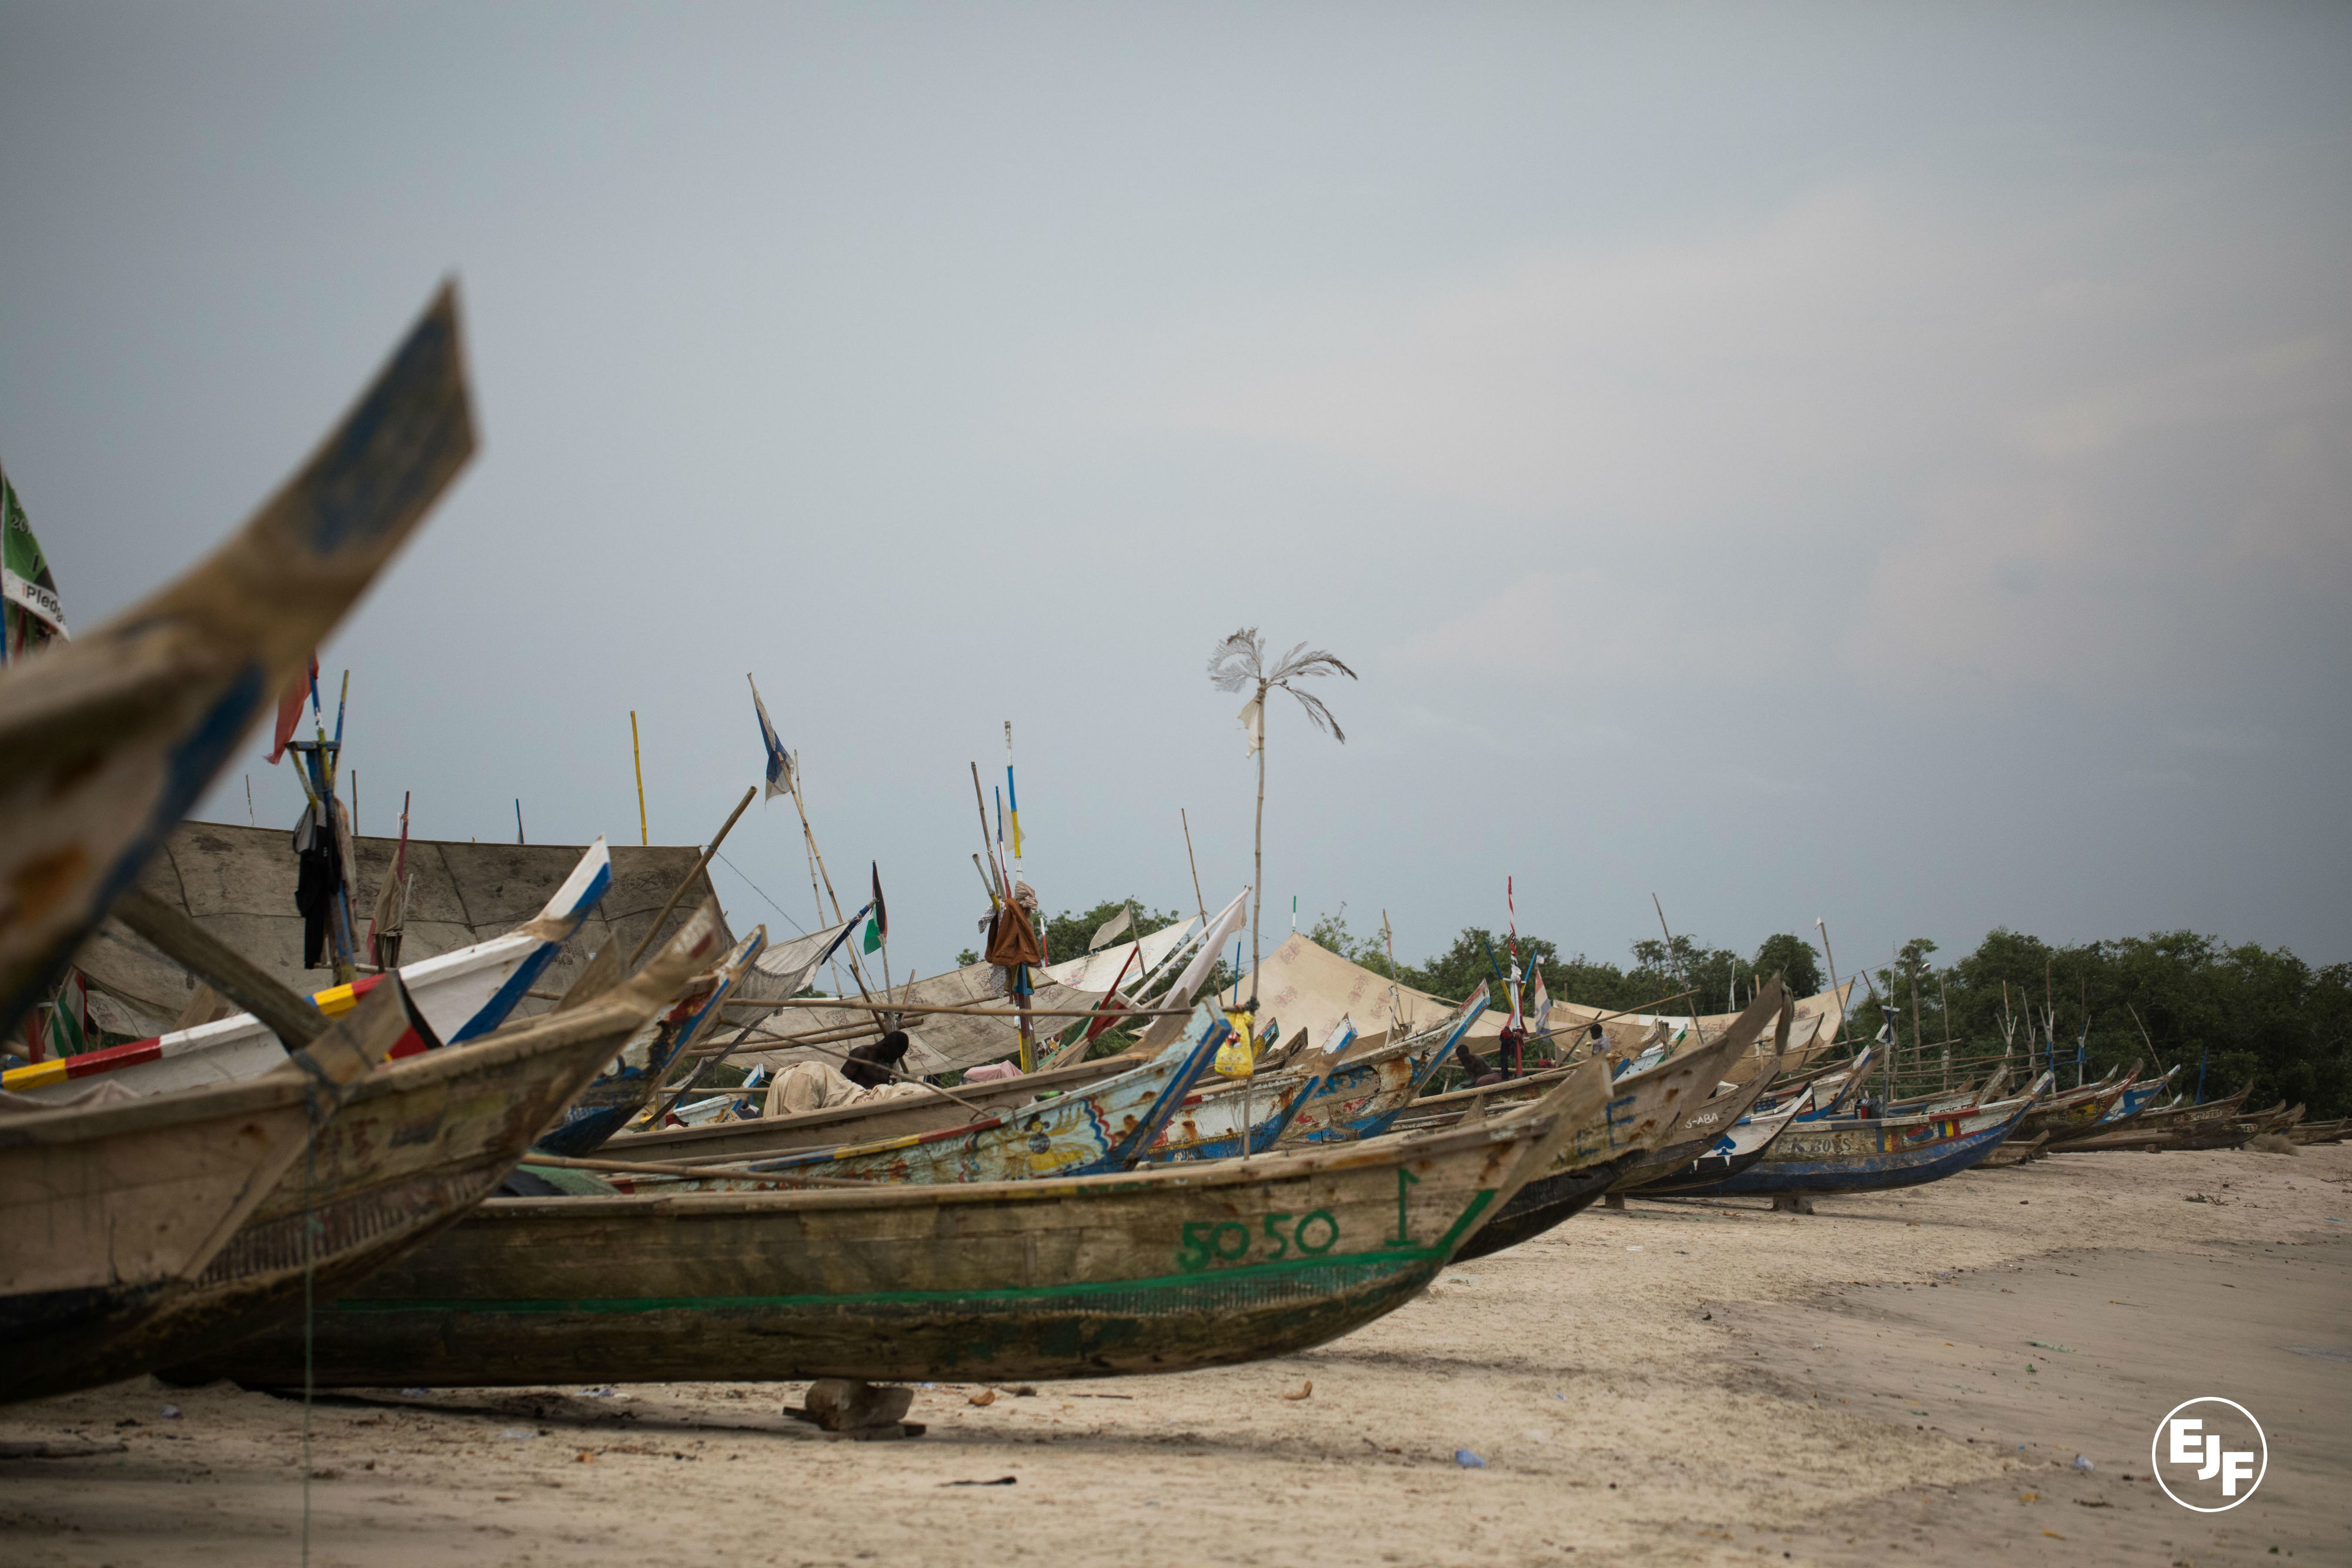 Ghana makes progress towards sustainable fisheries through fair tenure rights